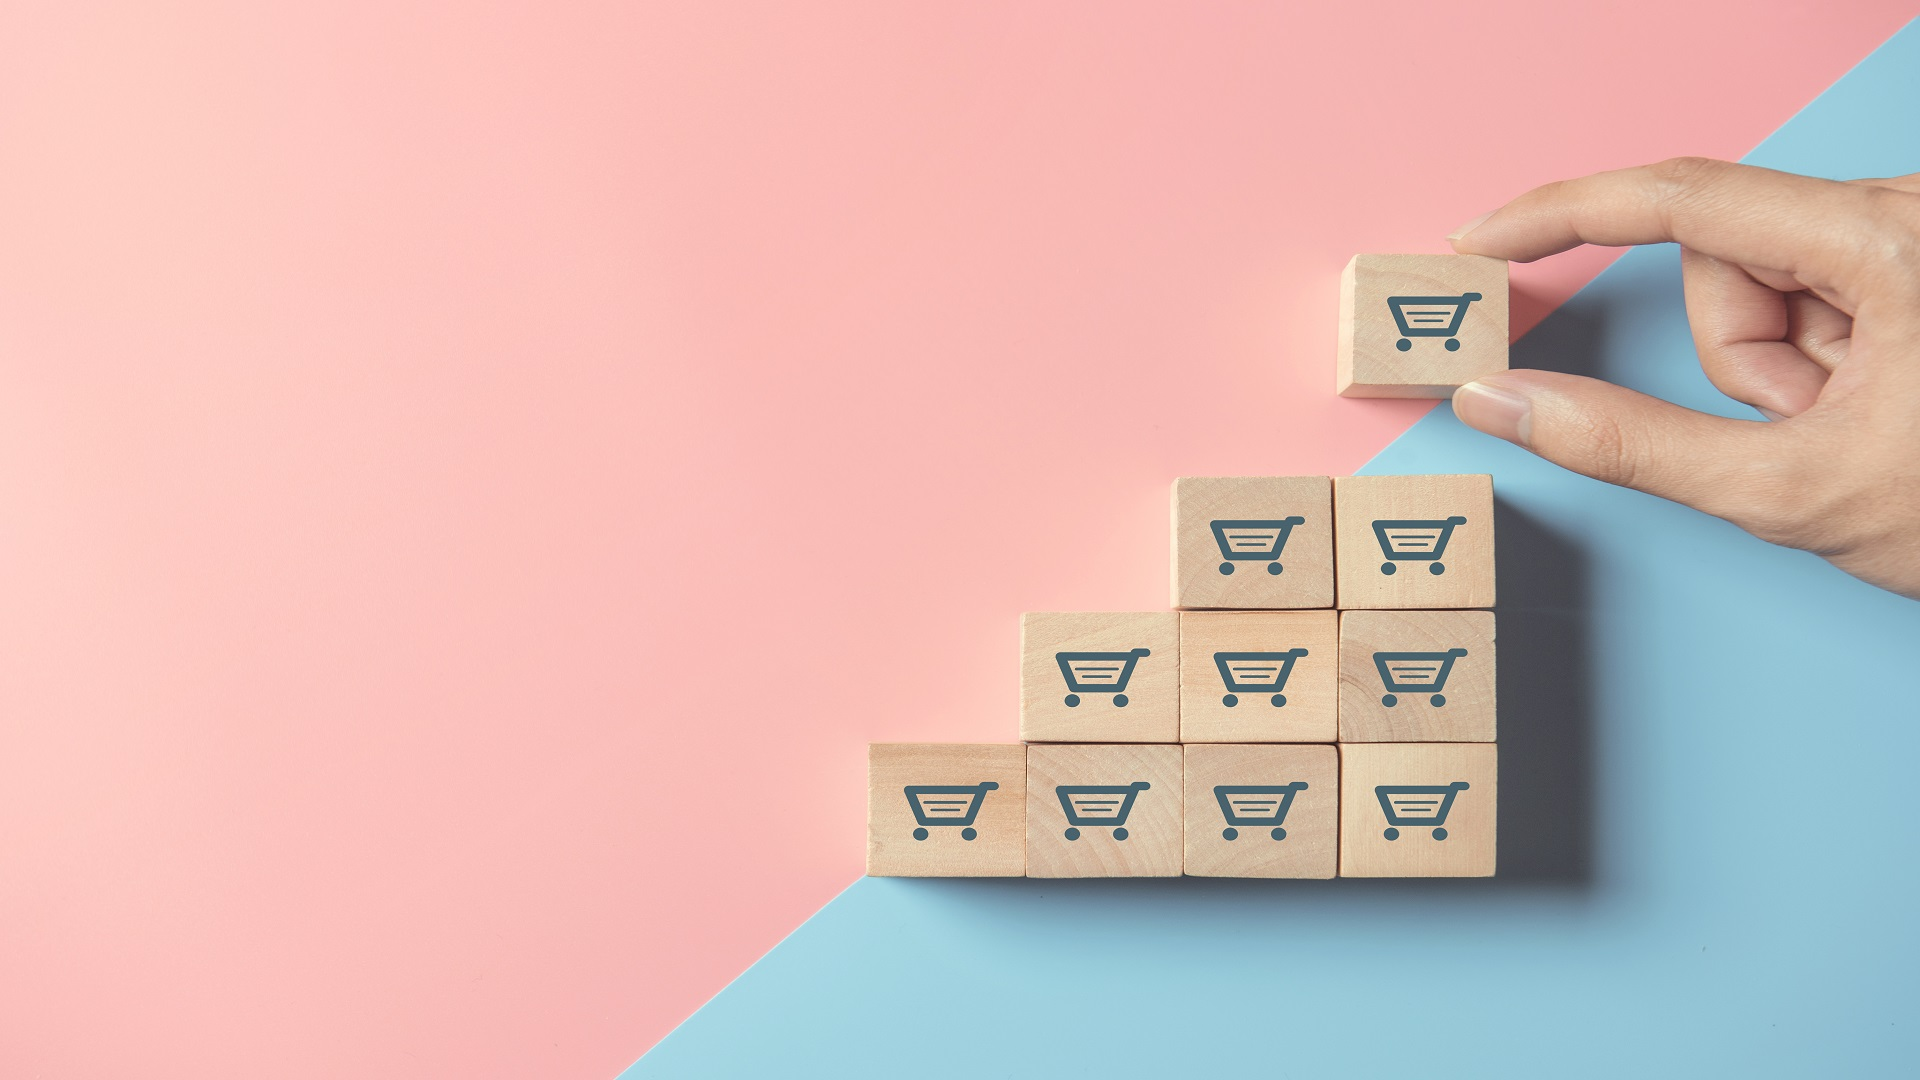 Person stacking blocks with a cart symbol - symbolizes how to grow your SaaS using automation